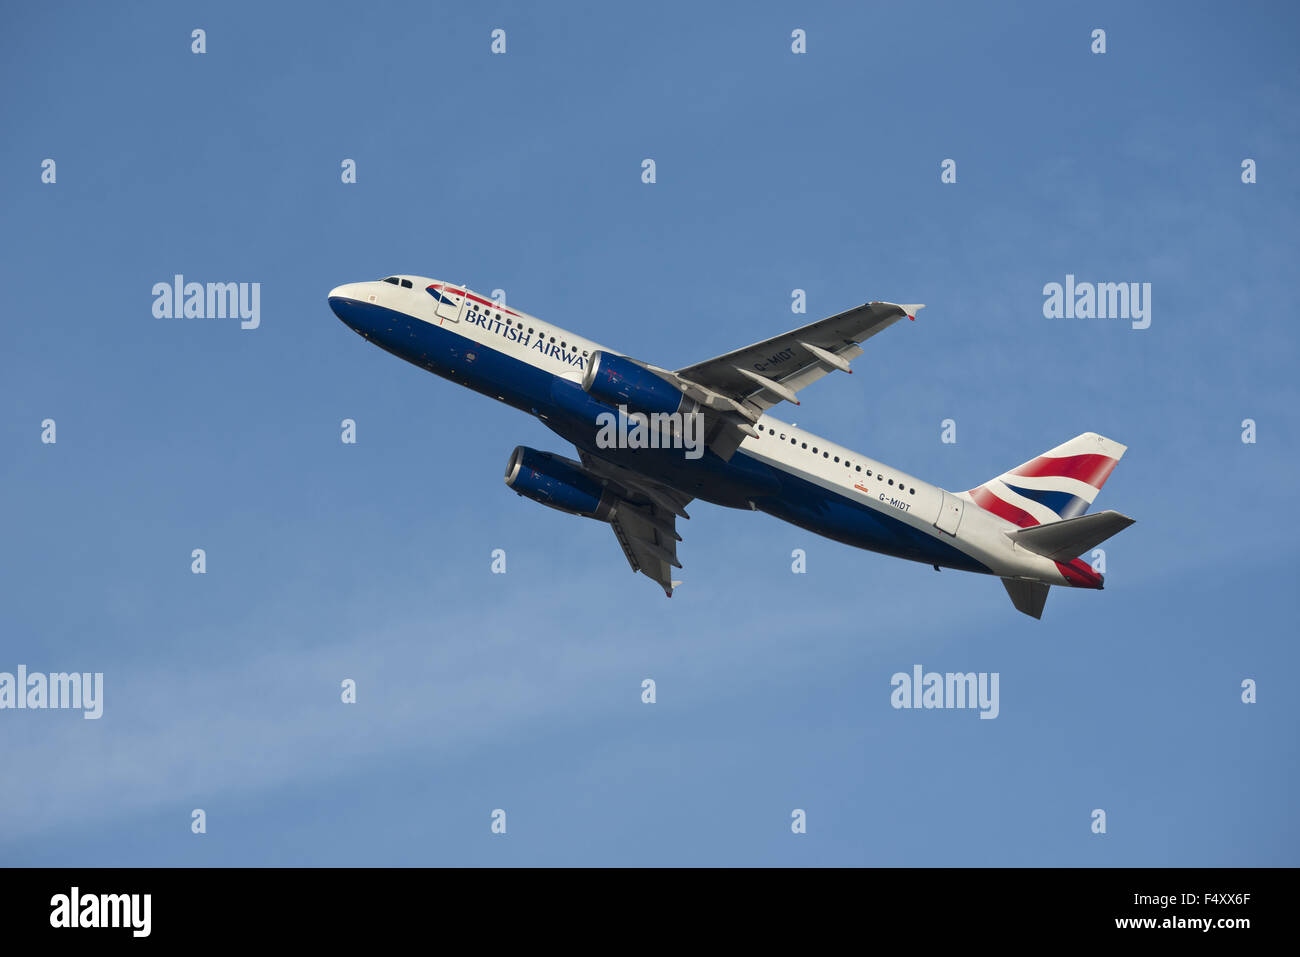 British Airways Airbus A320-232, Klettern Stockbild